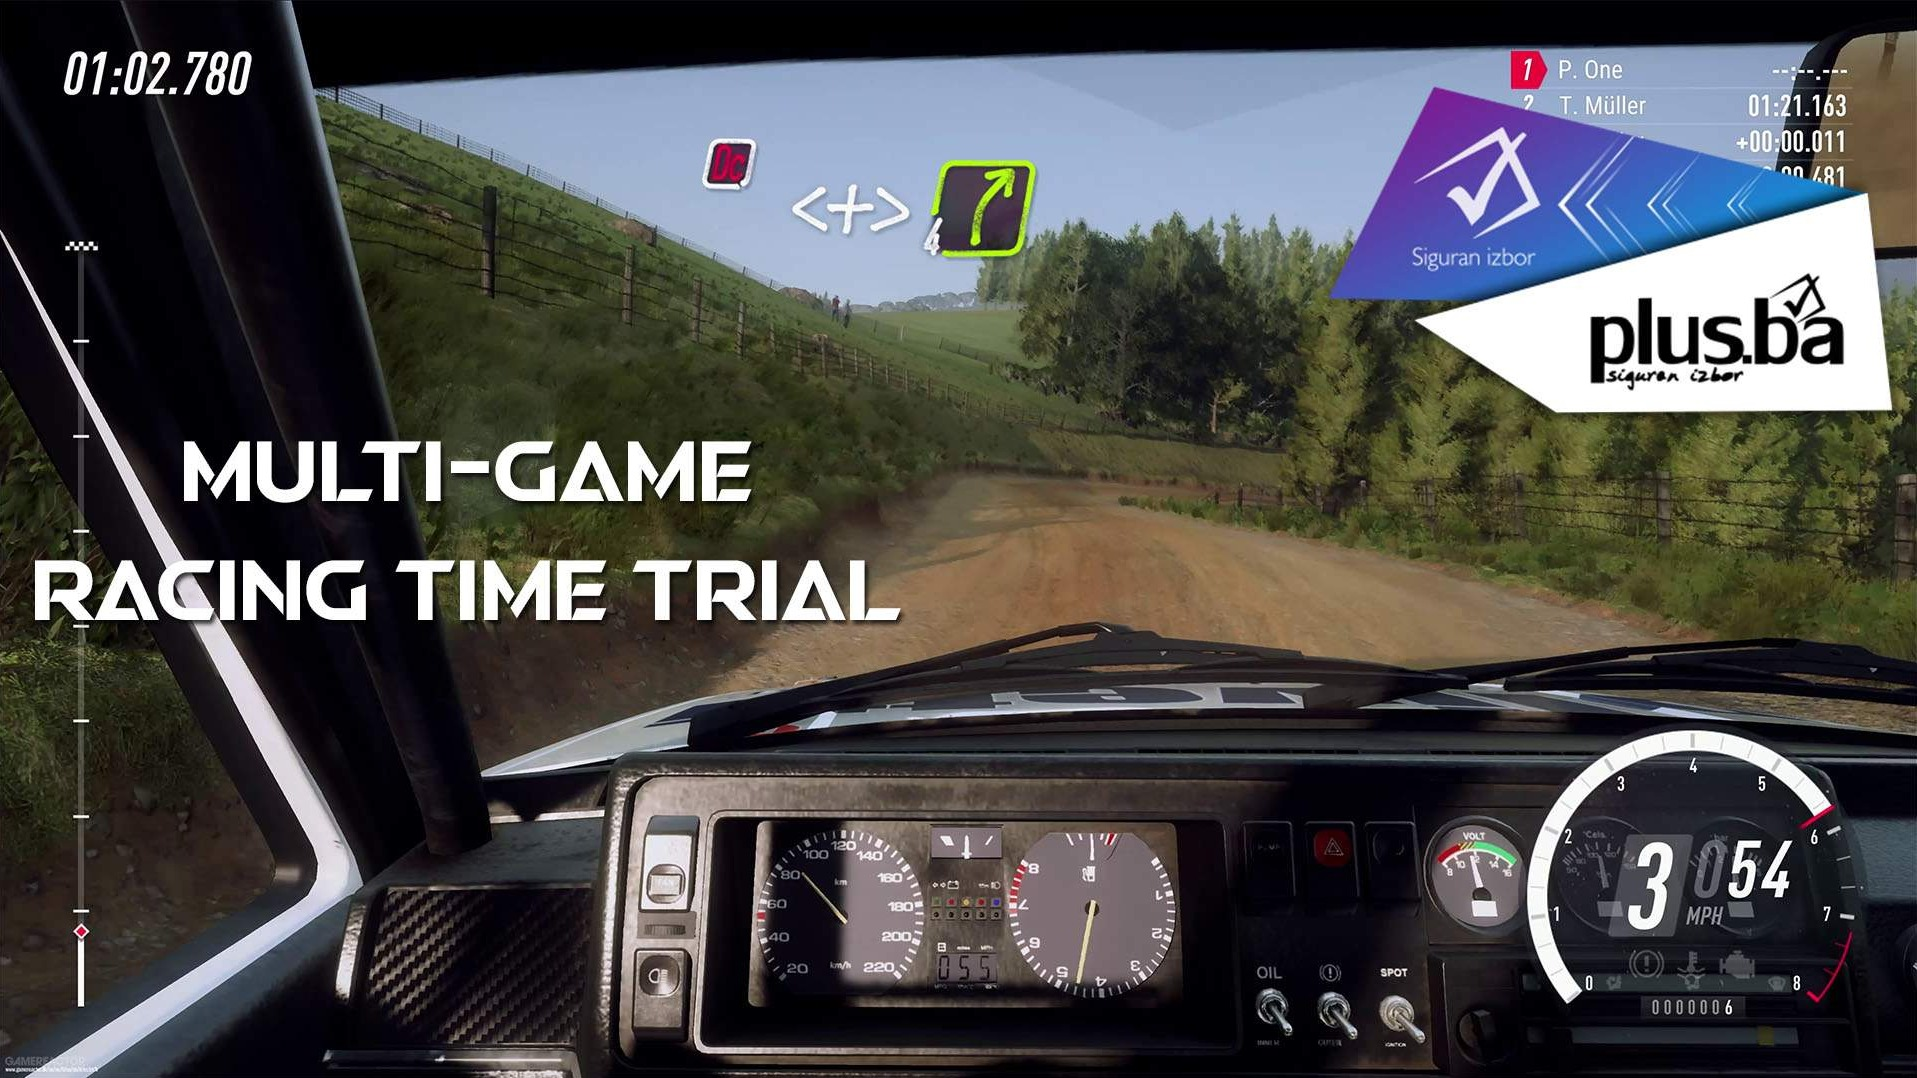 Multi-game Racing Time Trial